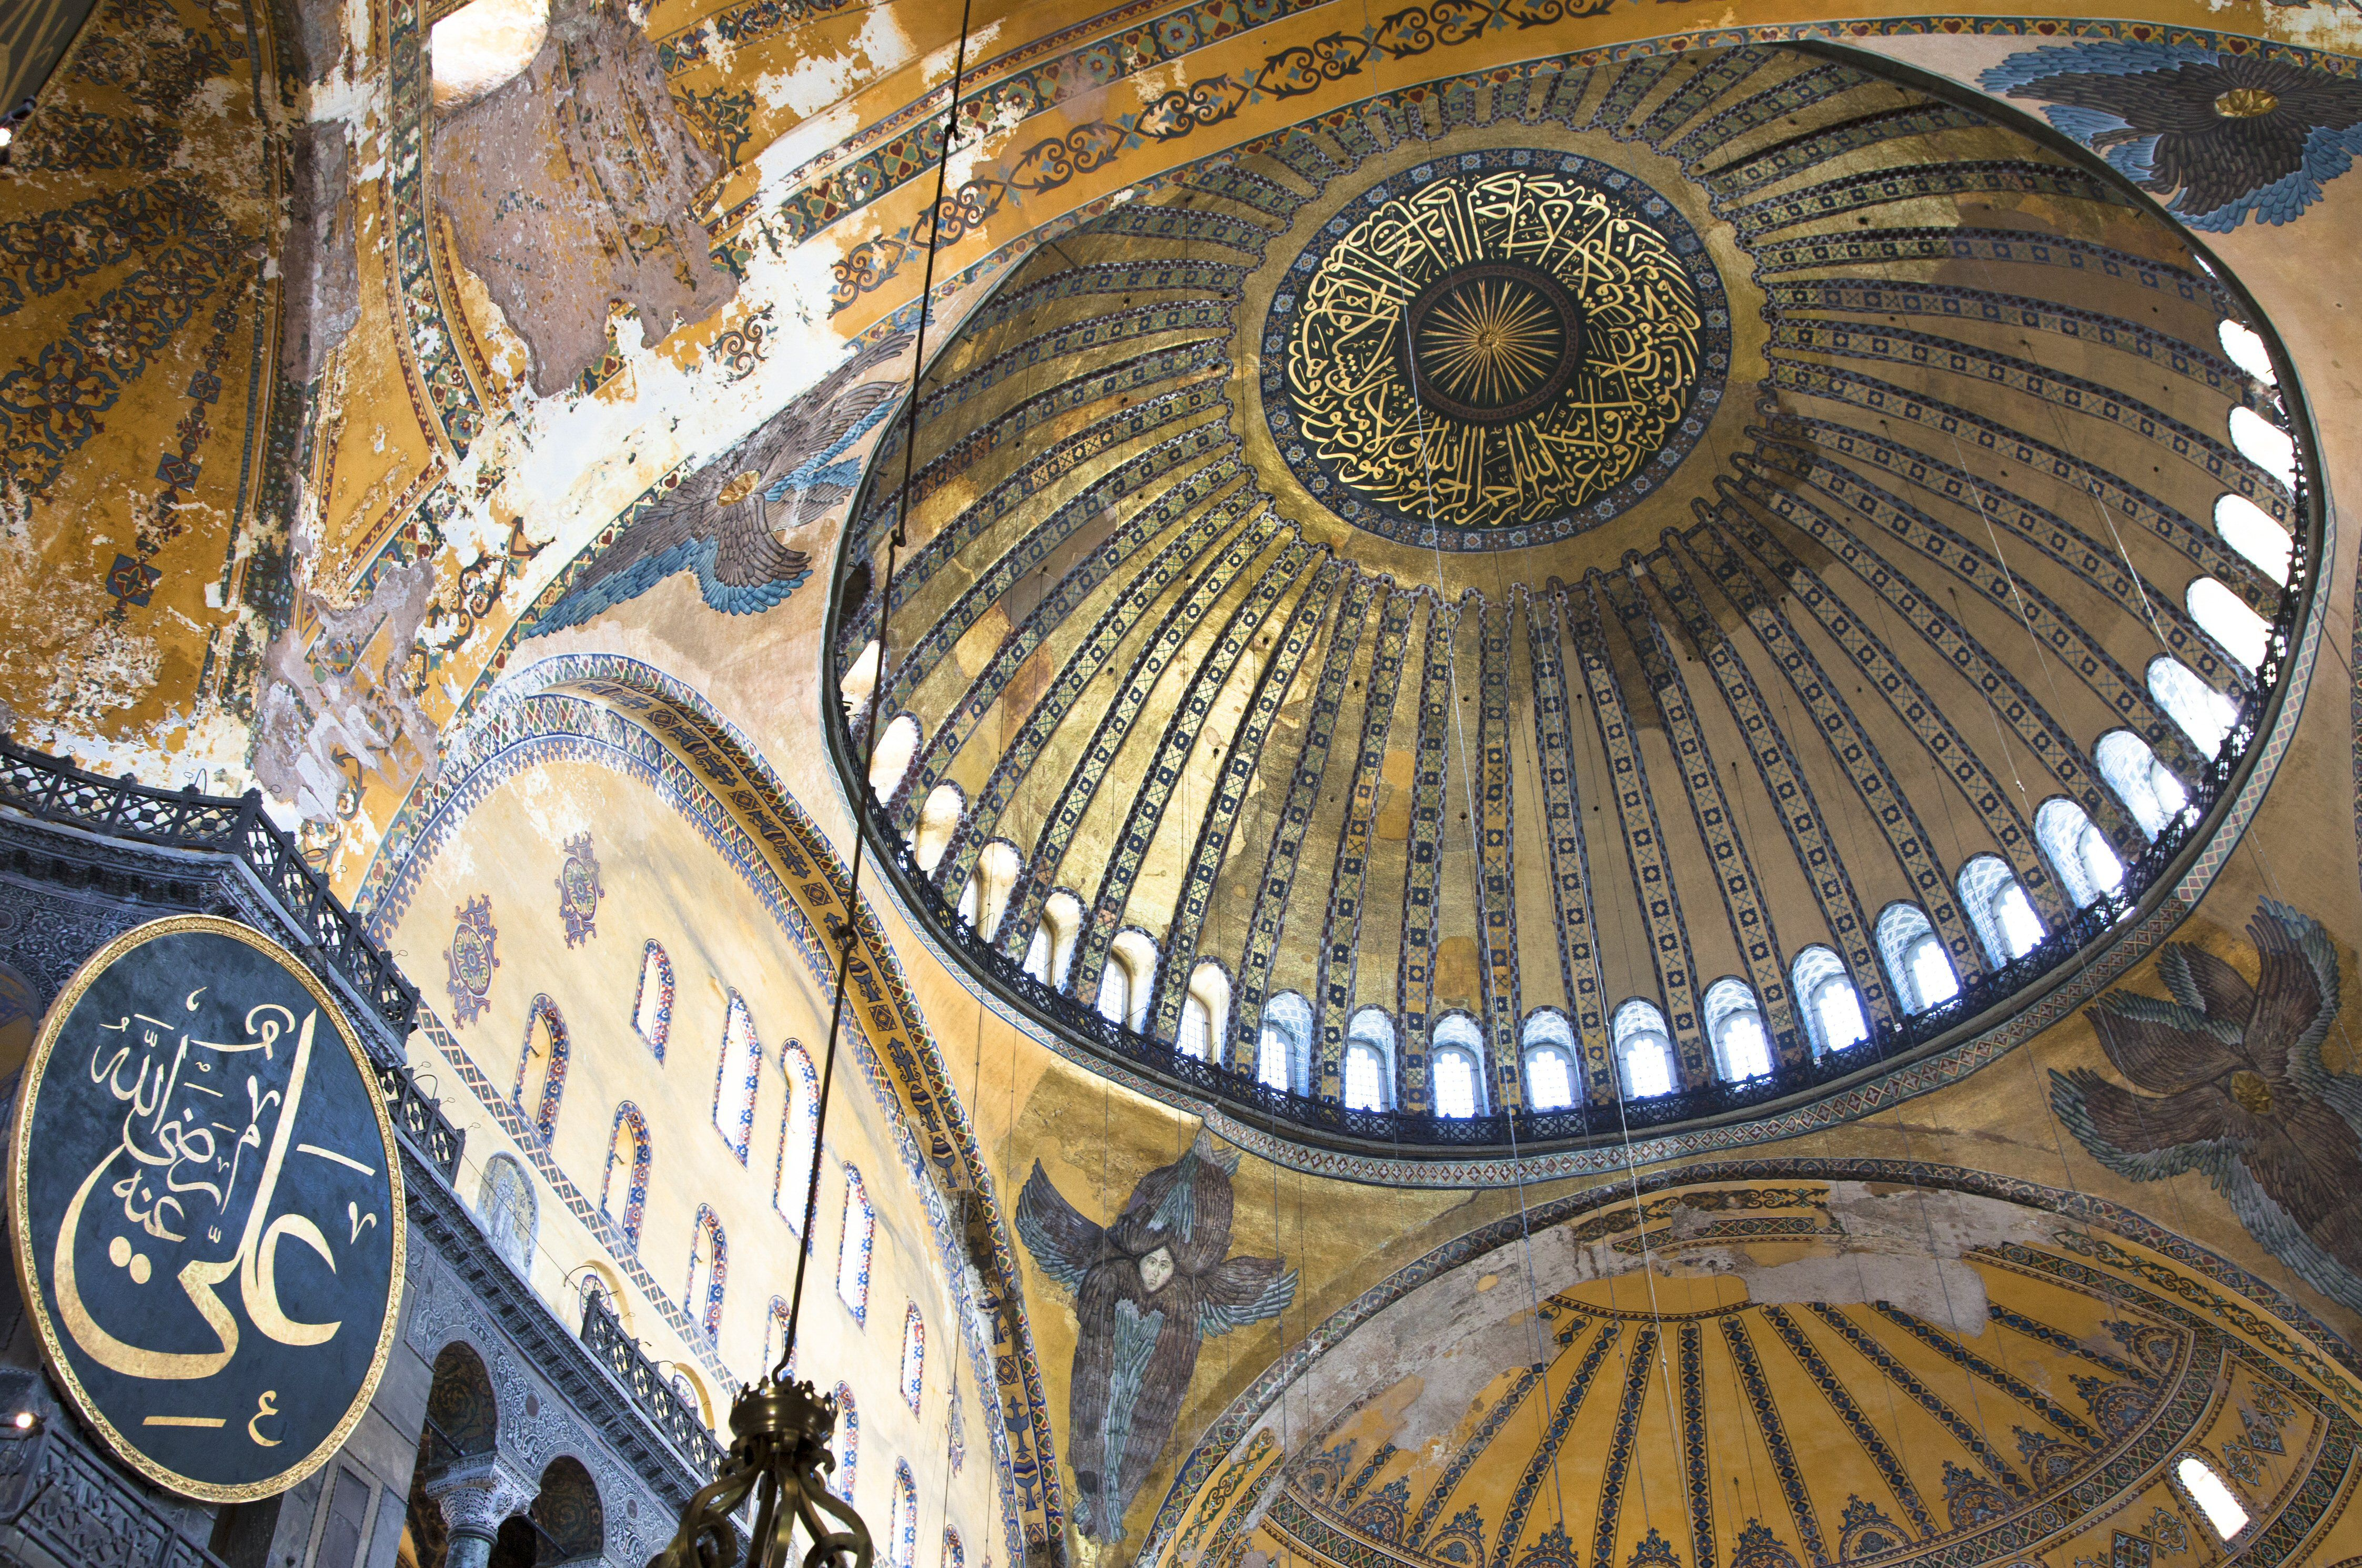 Interior domes, large, decorated, windows around the bottom, dominant colors are gold and blue